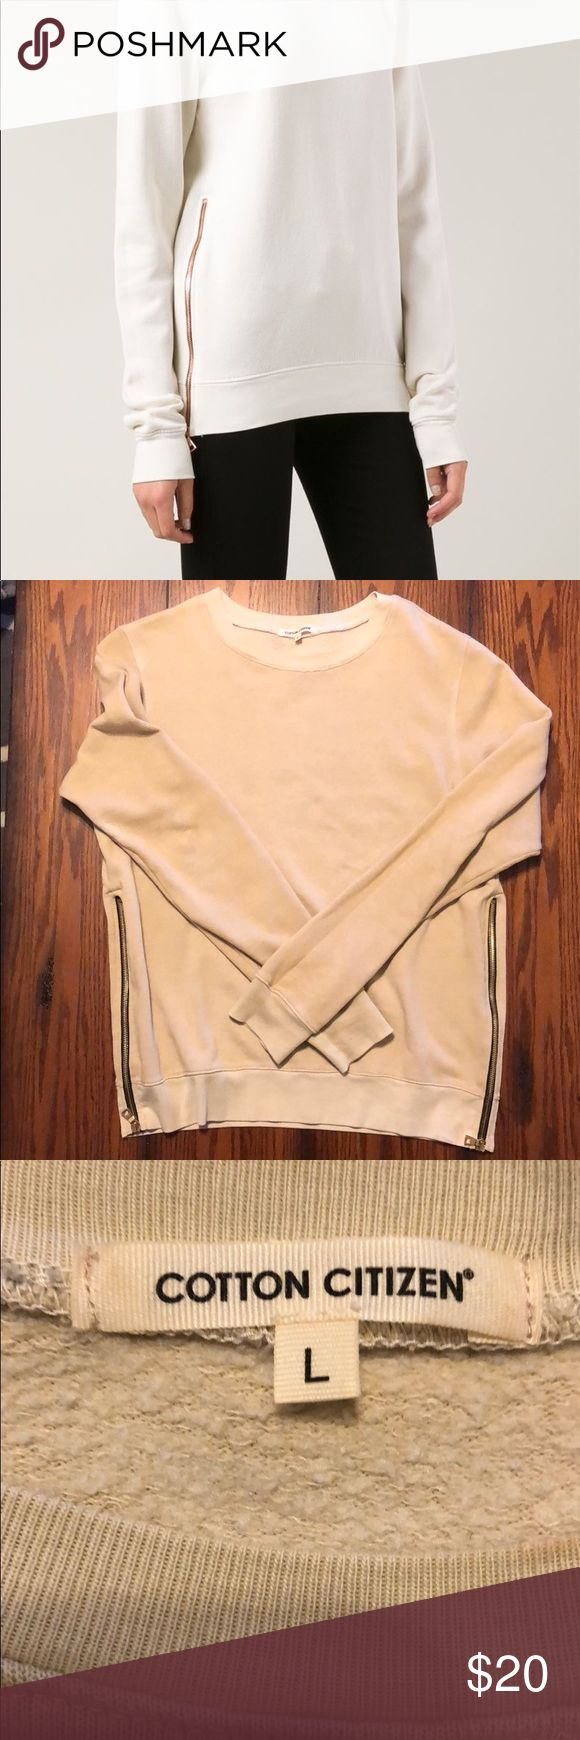 Cotton Citizen Side Zip Sweatshirt Cotton Citizen Side Zip Sweatshirt in Nude. Sized large but fits small. Gold zippers with black trim. Long enough to wear with leggings. Really good condition! Cotton Citizen Tops Sweatshirts & Hoodies